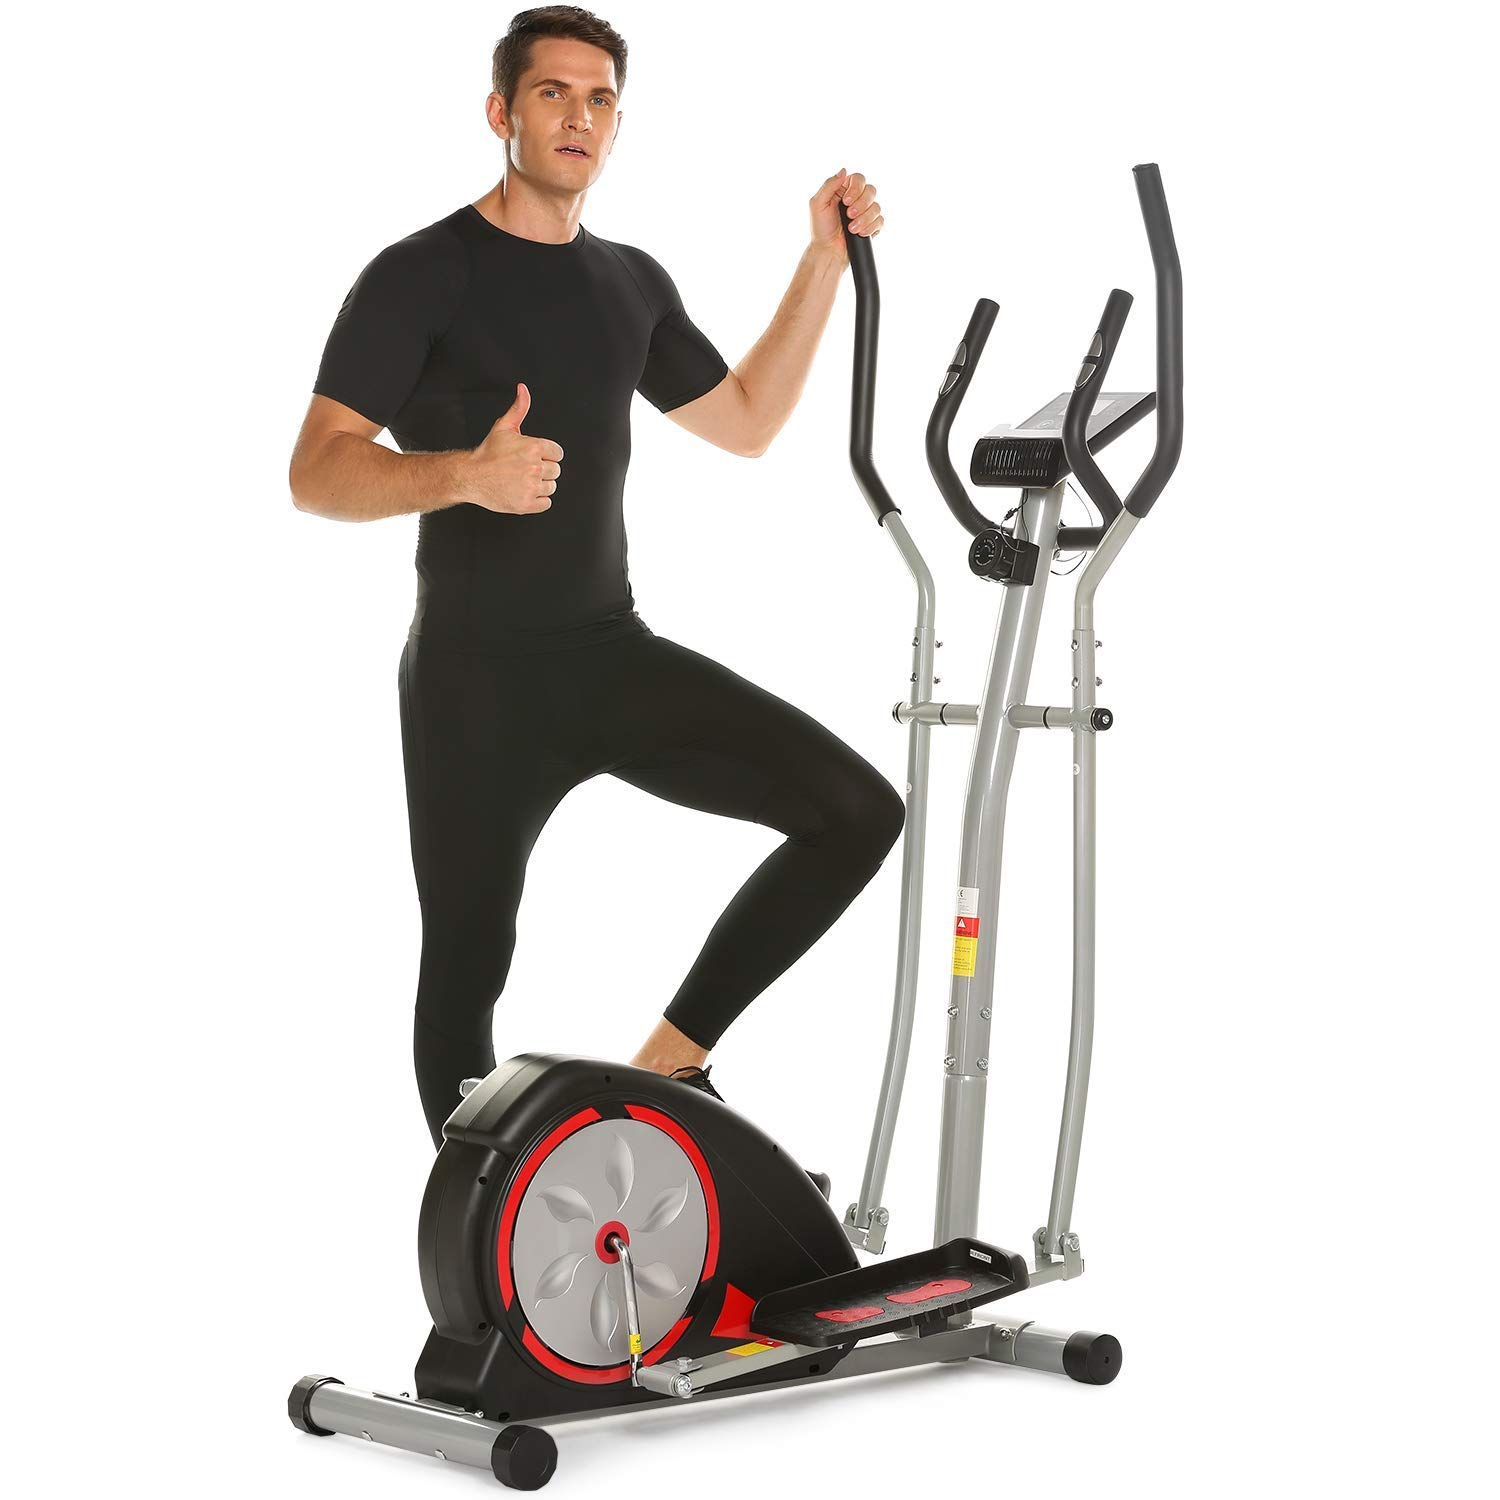 Elliptical Exercise Machine Eliptical Trainer Machine for Home Use Magnetic Smooth Quiet Driven (Elliptical)